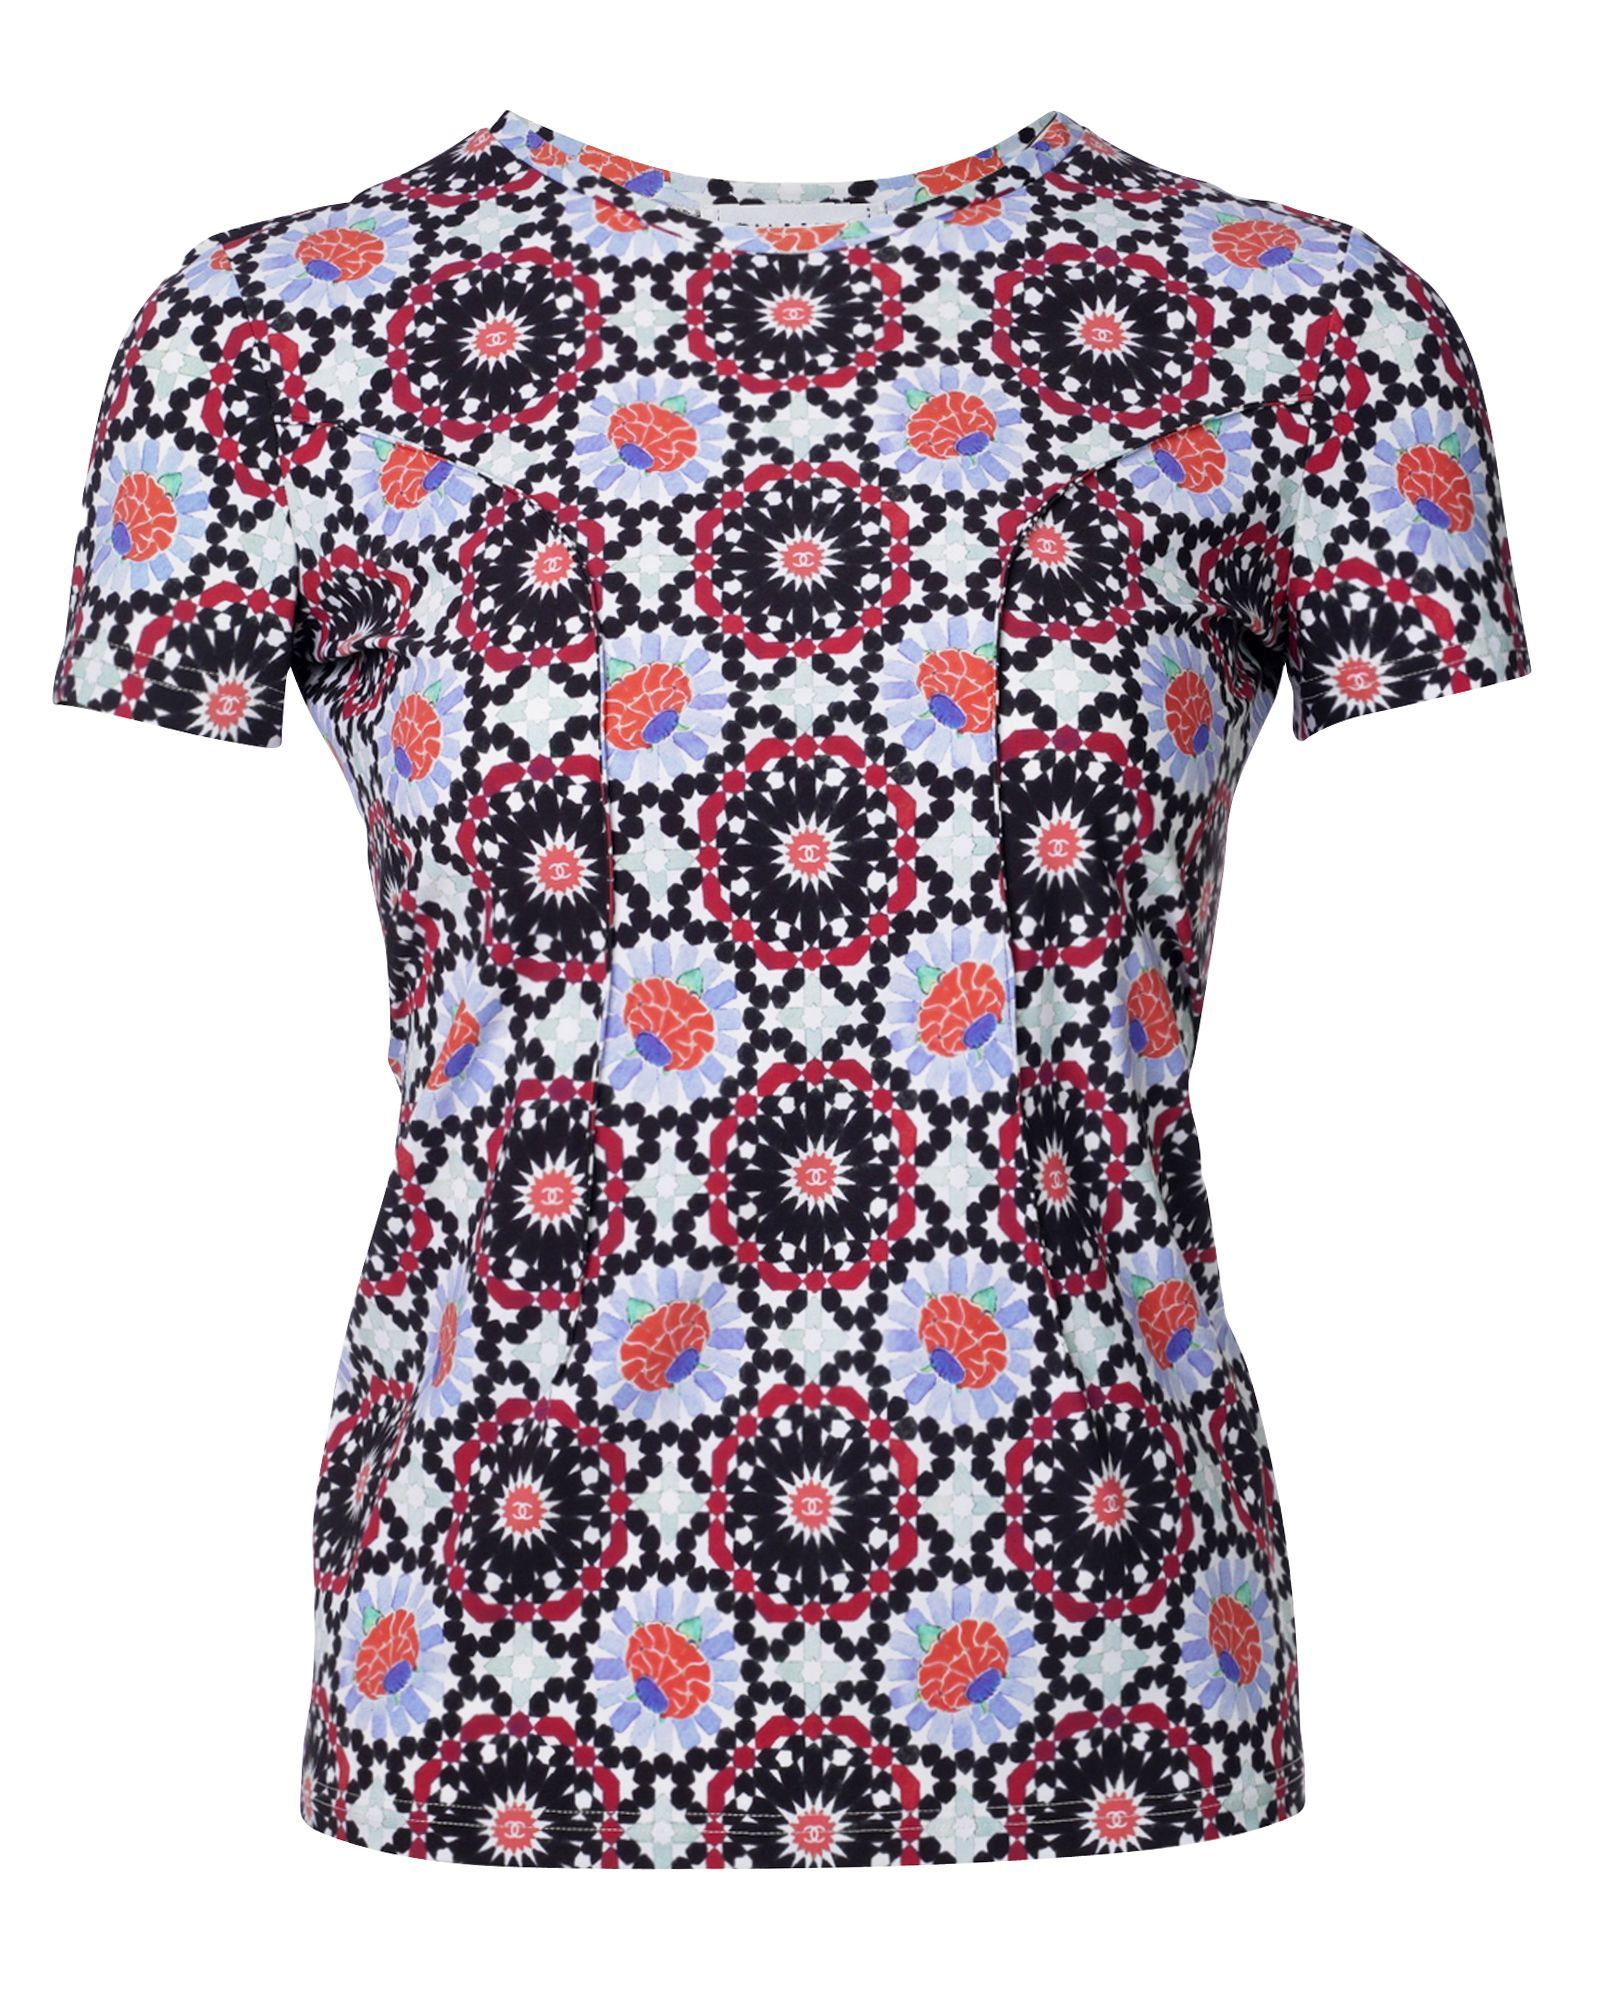 Chanel Multi Print Smock Top -Pre Owned Condition Very Good